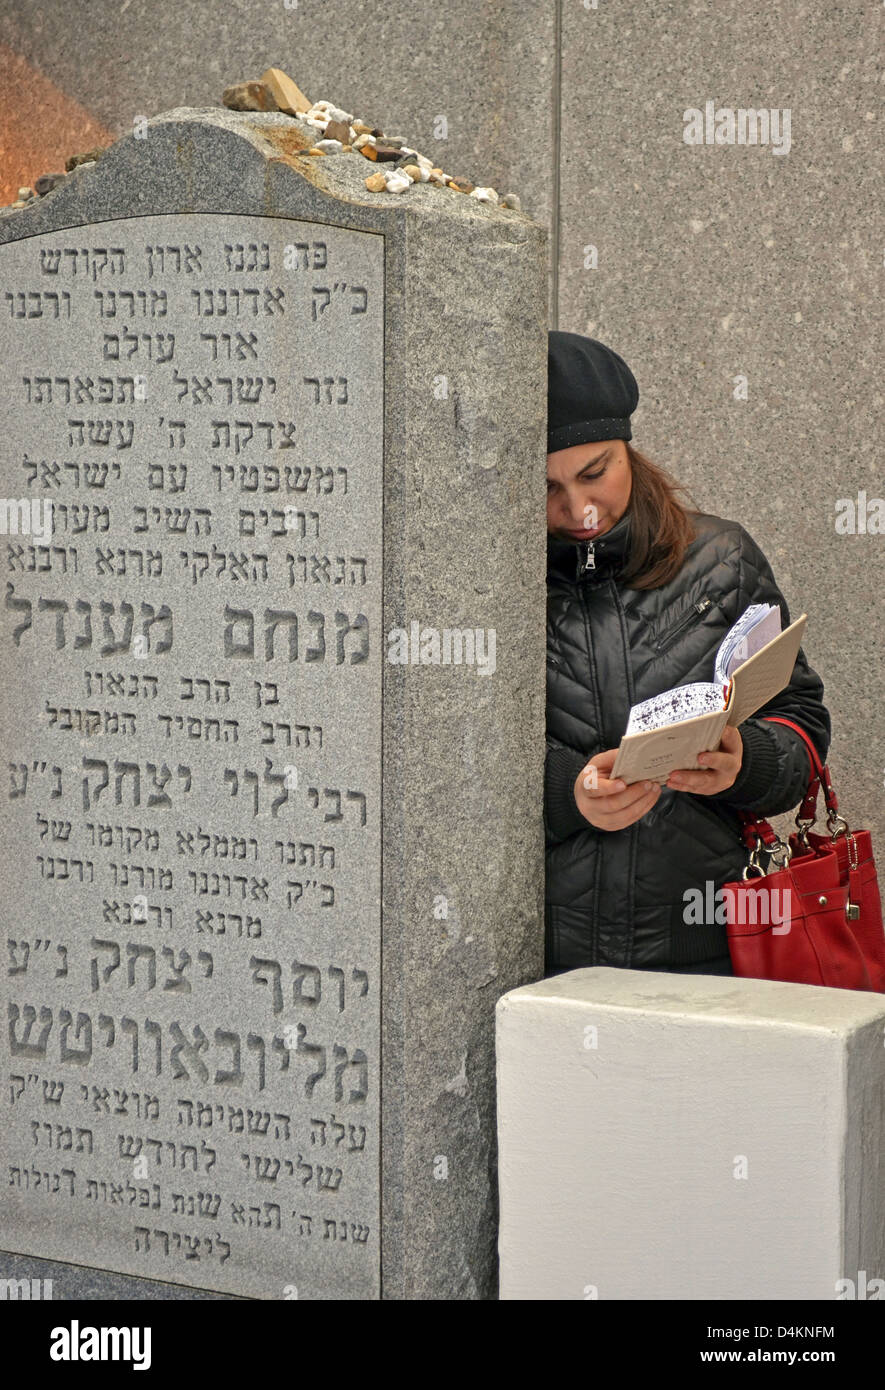 Religious Jewish woman praying at The Ohel, the burial place of the Lubavitcher Rebbe in Cambria Heights, Queens, - Stock Image